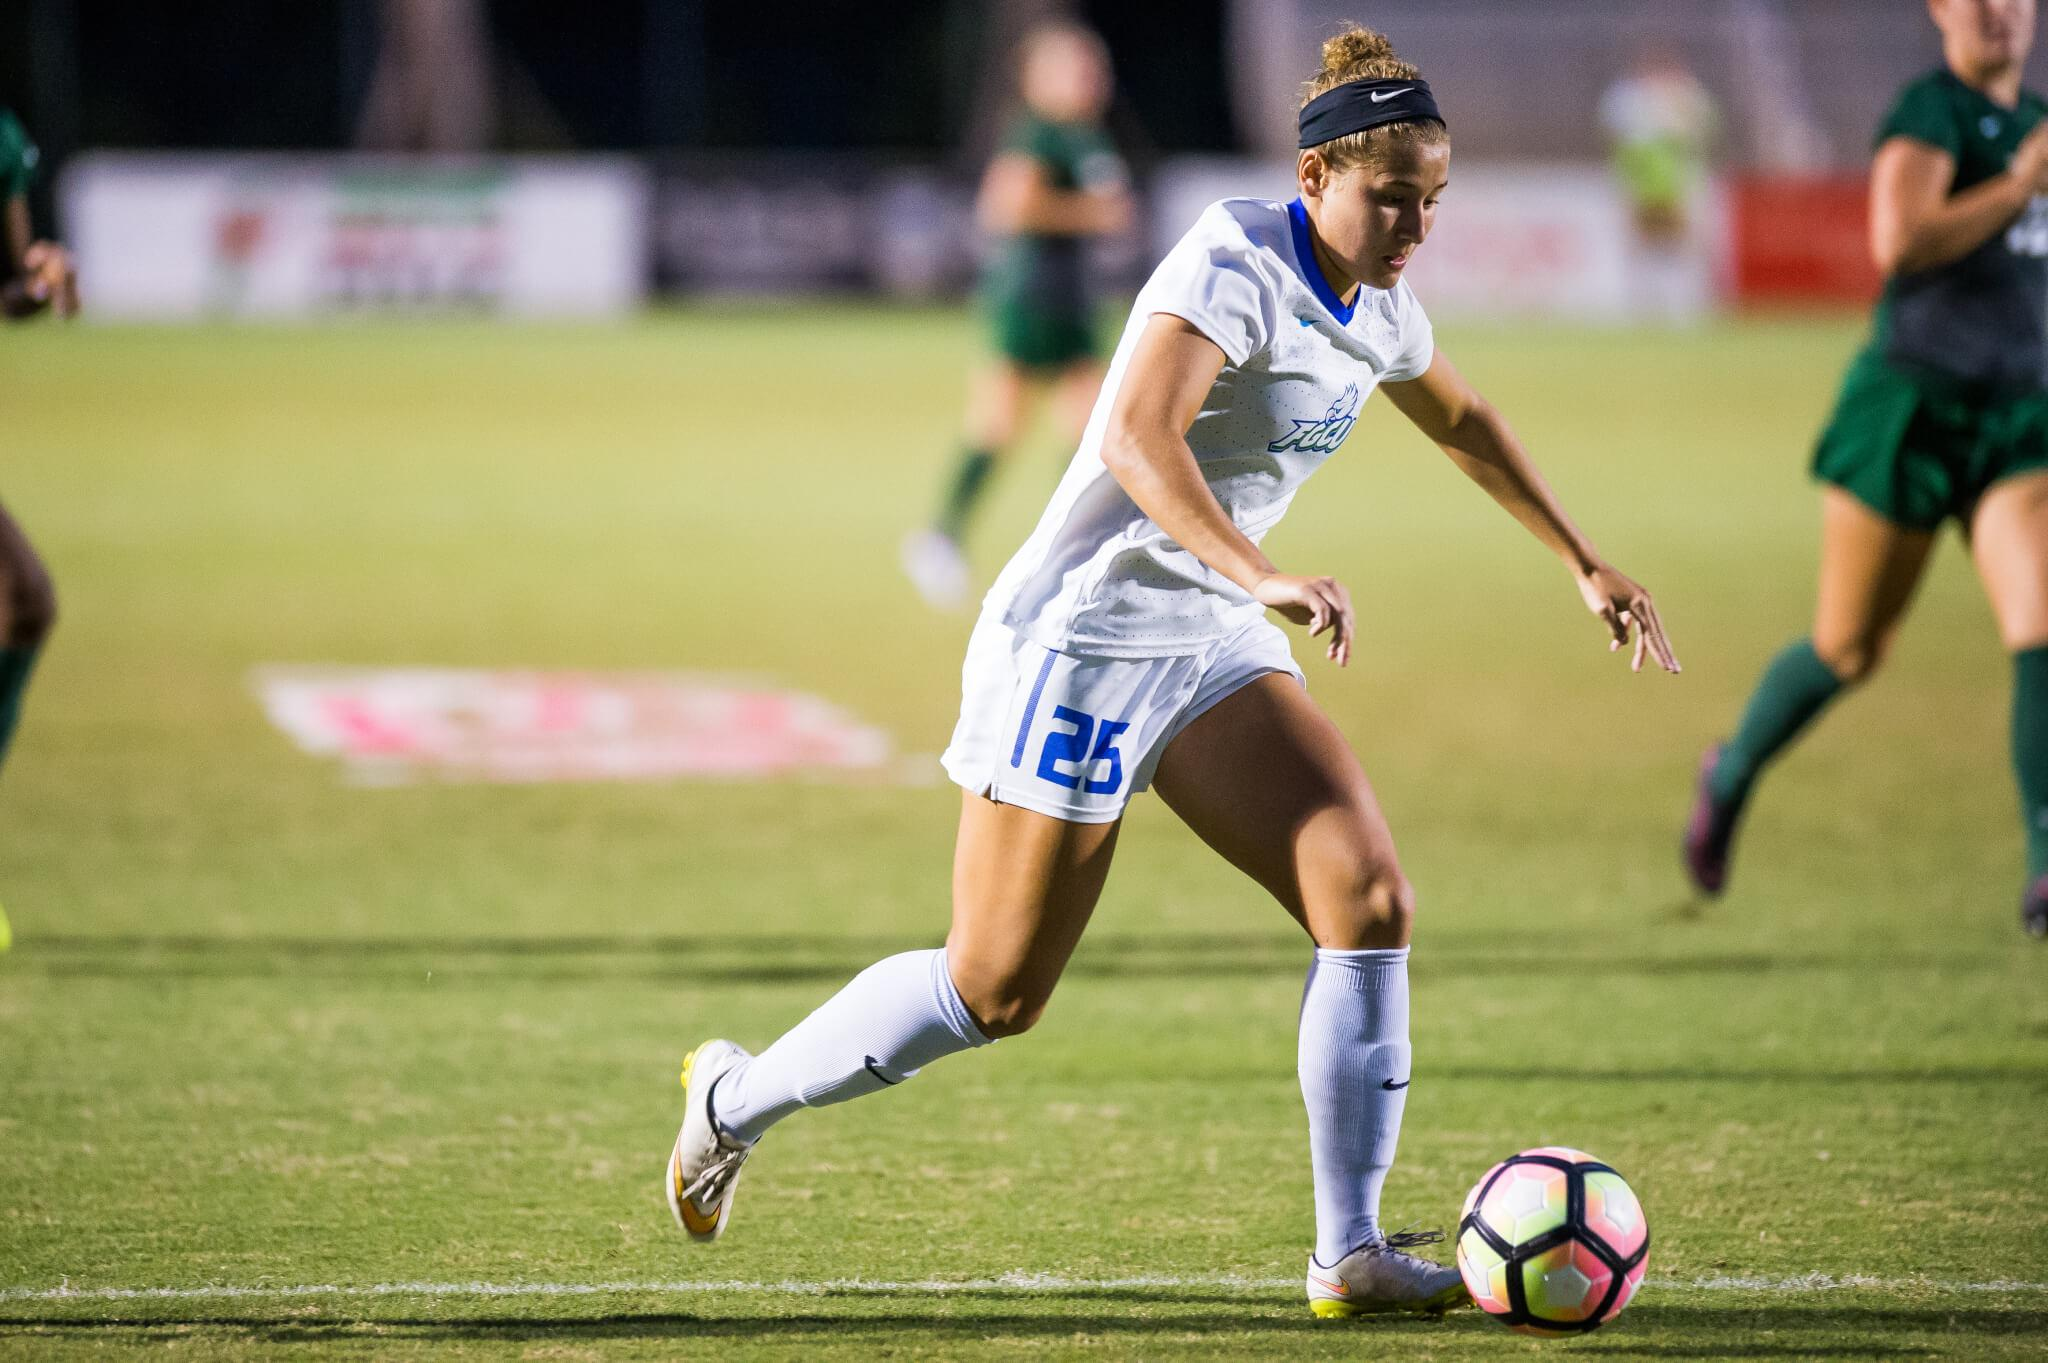 FGCU women's soccer earns postseason ASUN recognitions